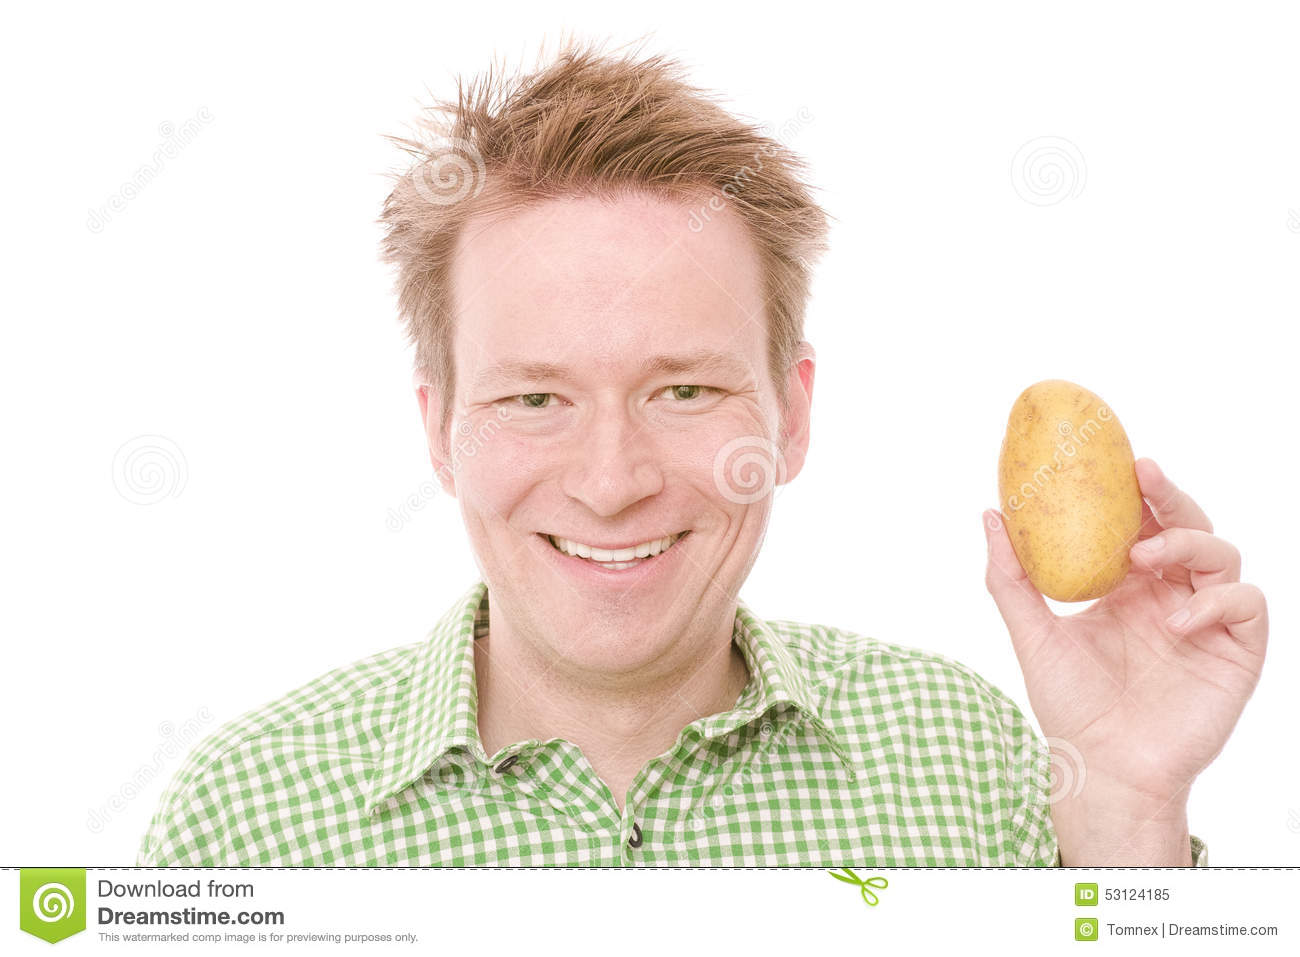 happy-potato-young-smiling-man-holding-i